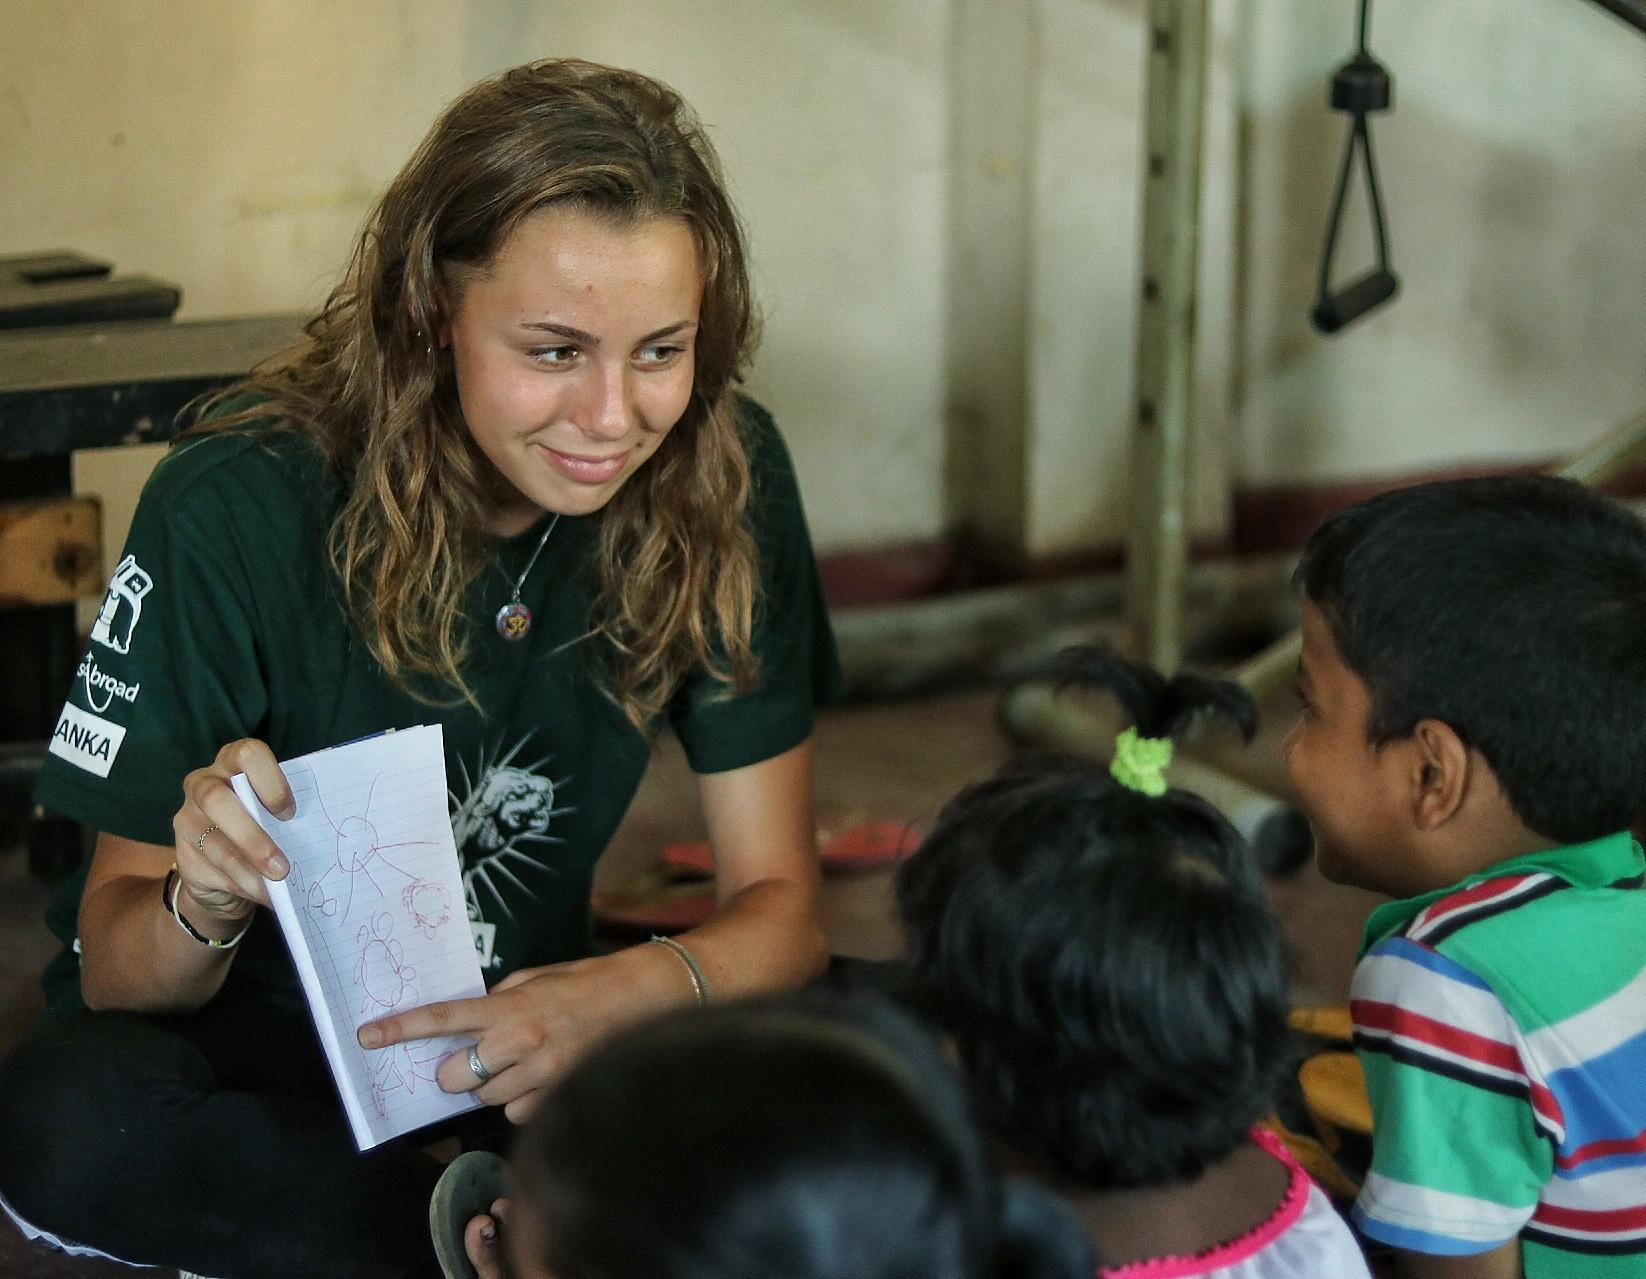 Projects Abroad volunteer with children in Sri Lanka teaches English to young children at her Childcare placement.